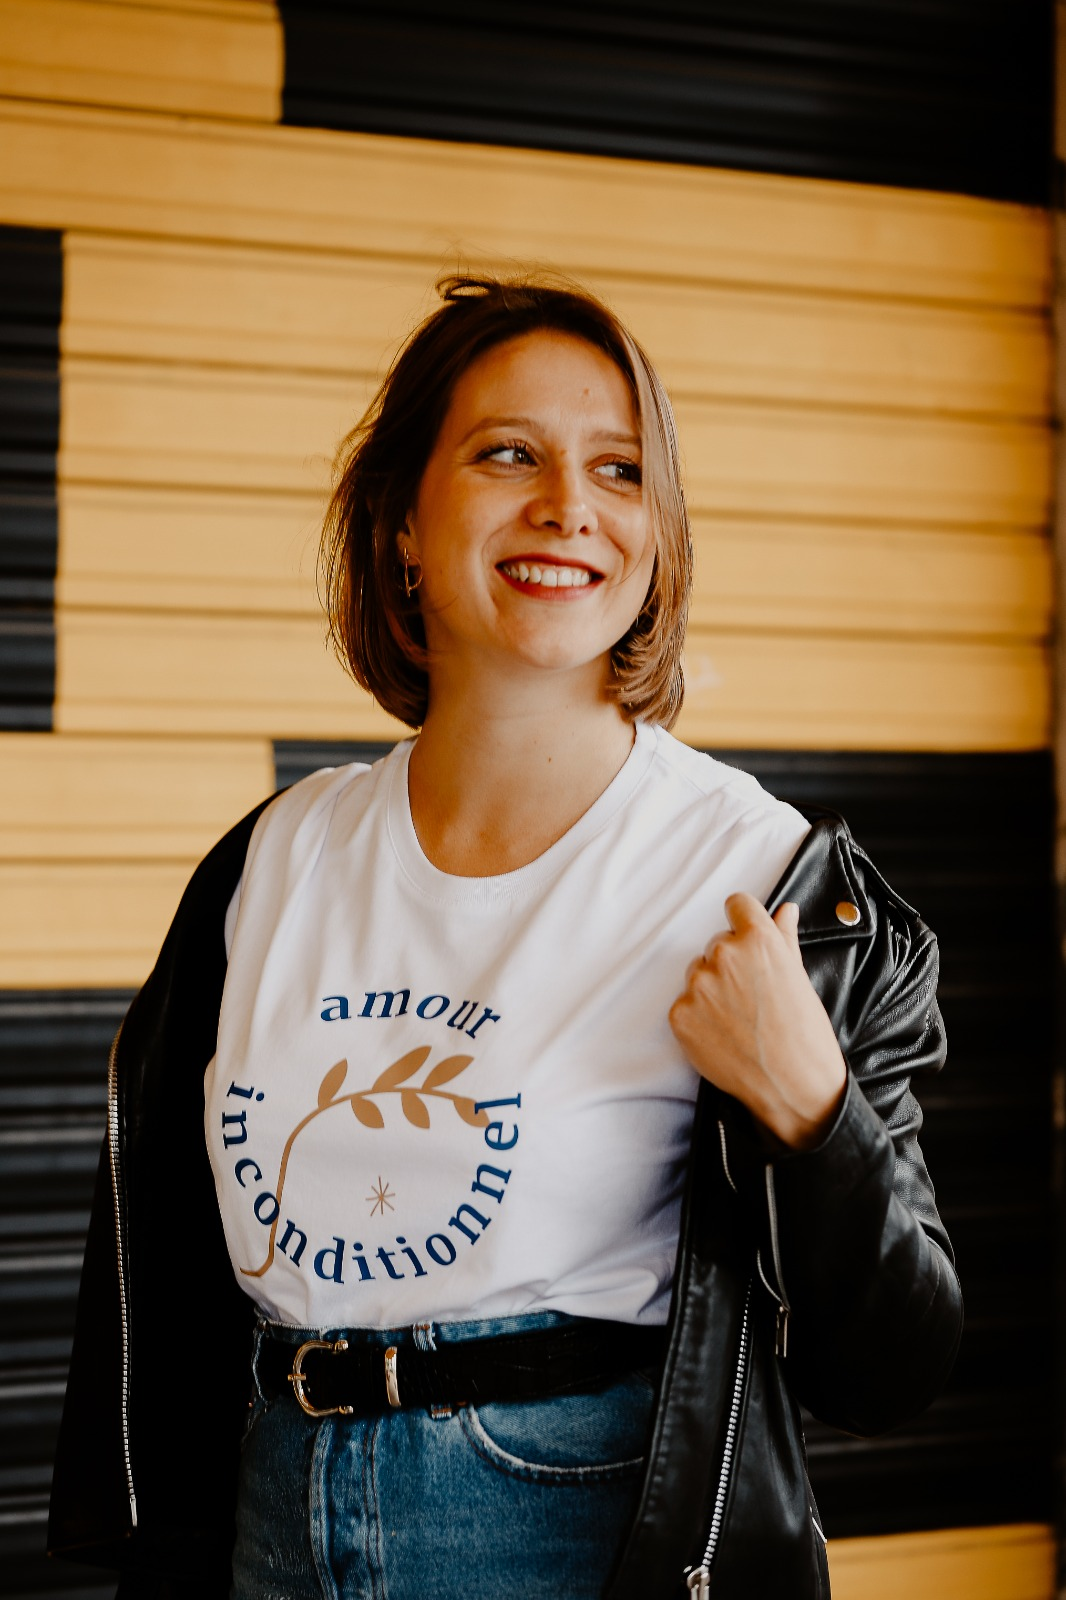 tee-shirt-wanderhumanity-amour-inconditionnel-face-femme2